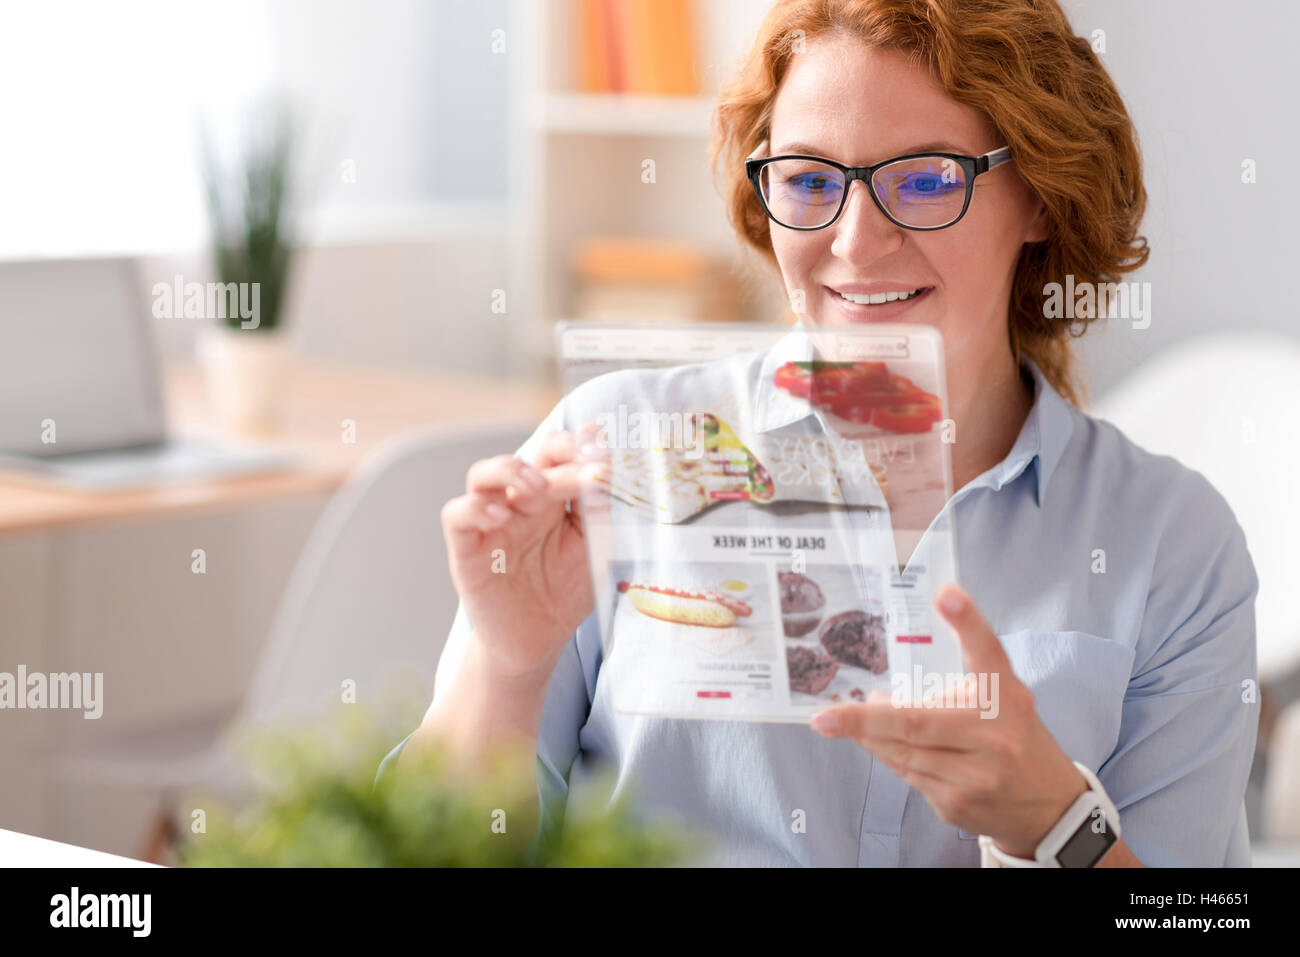 Positive woman using tablet - Stock Image